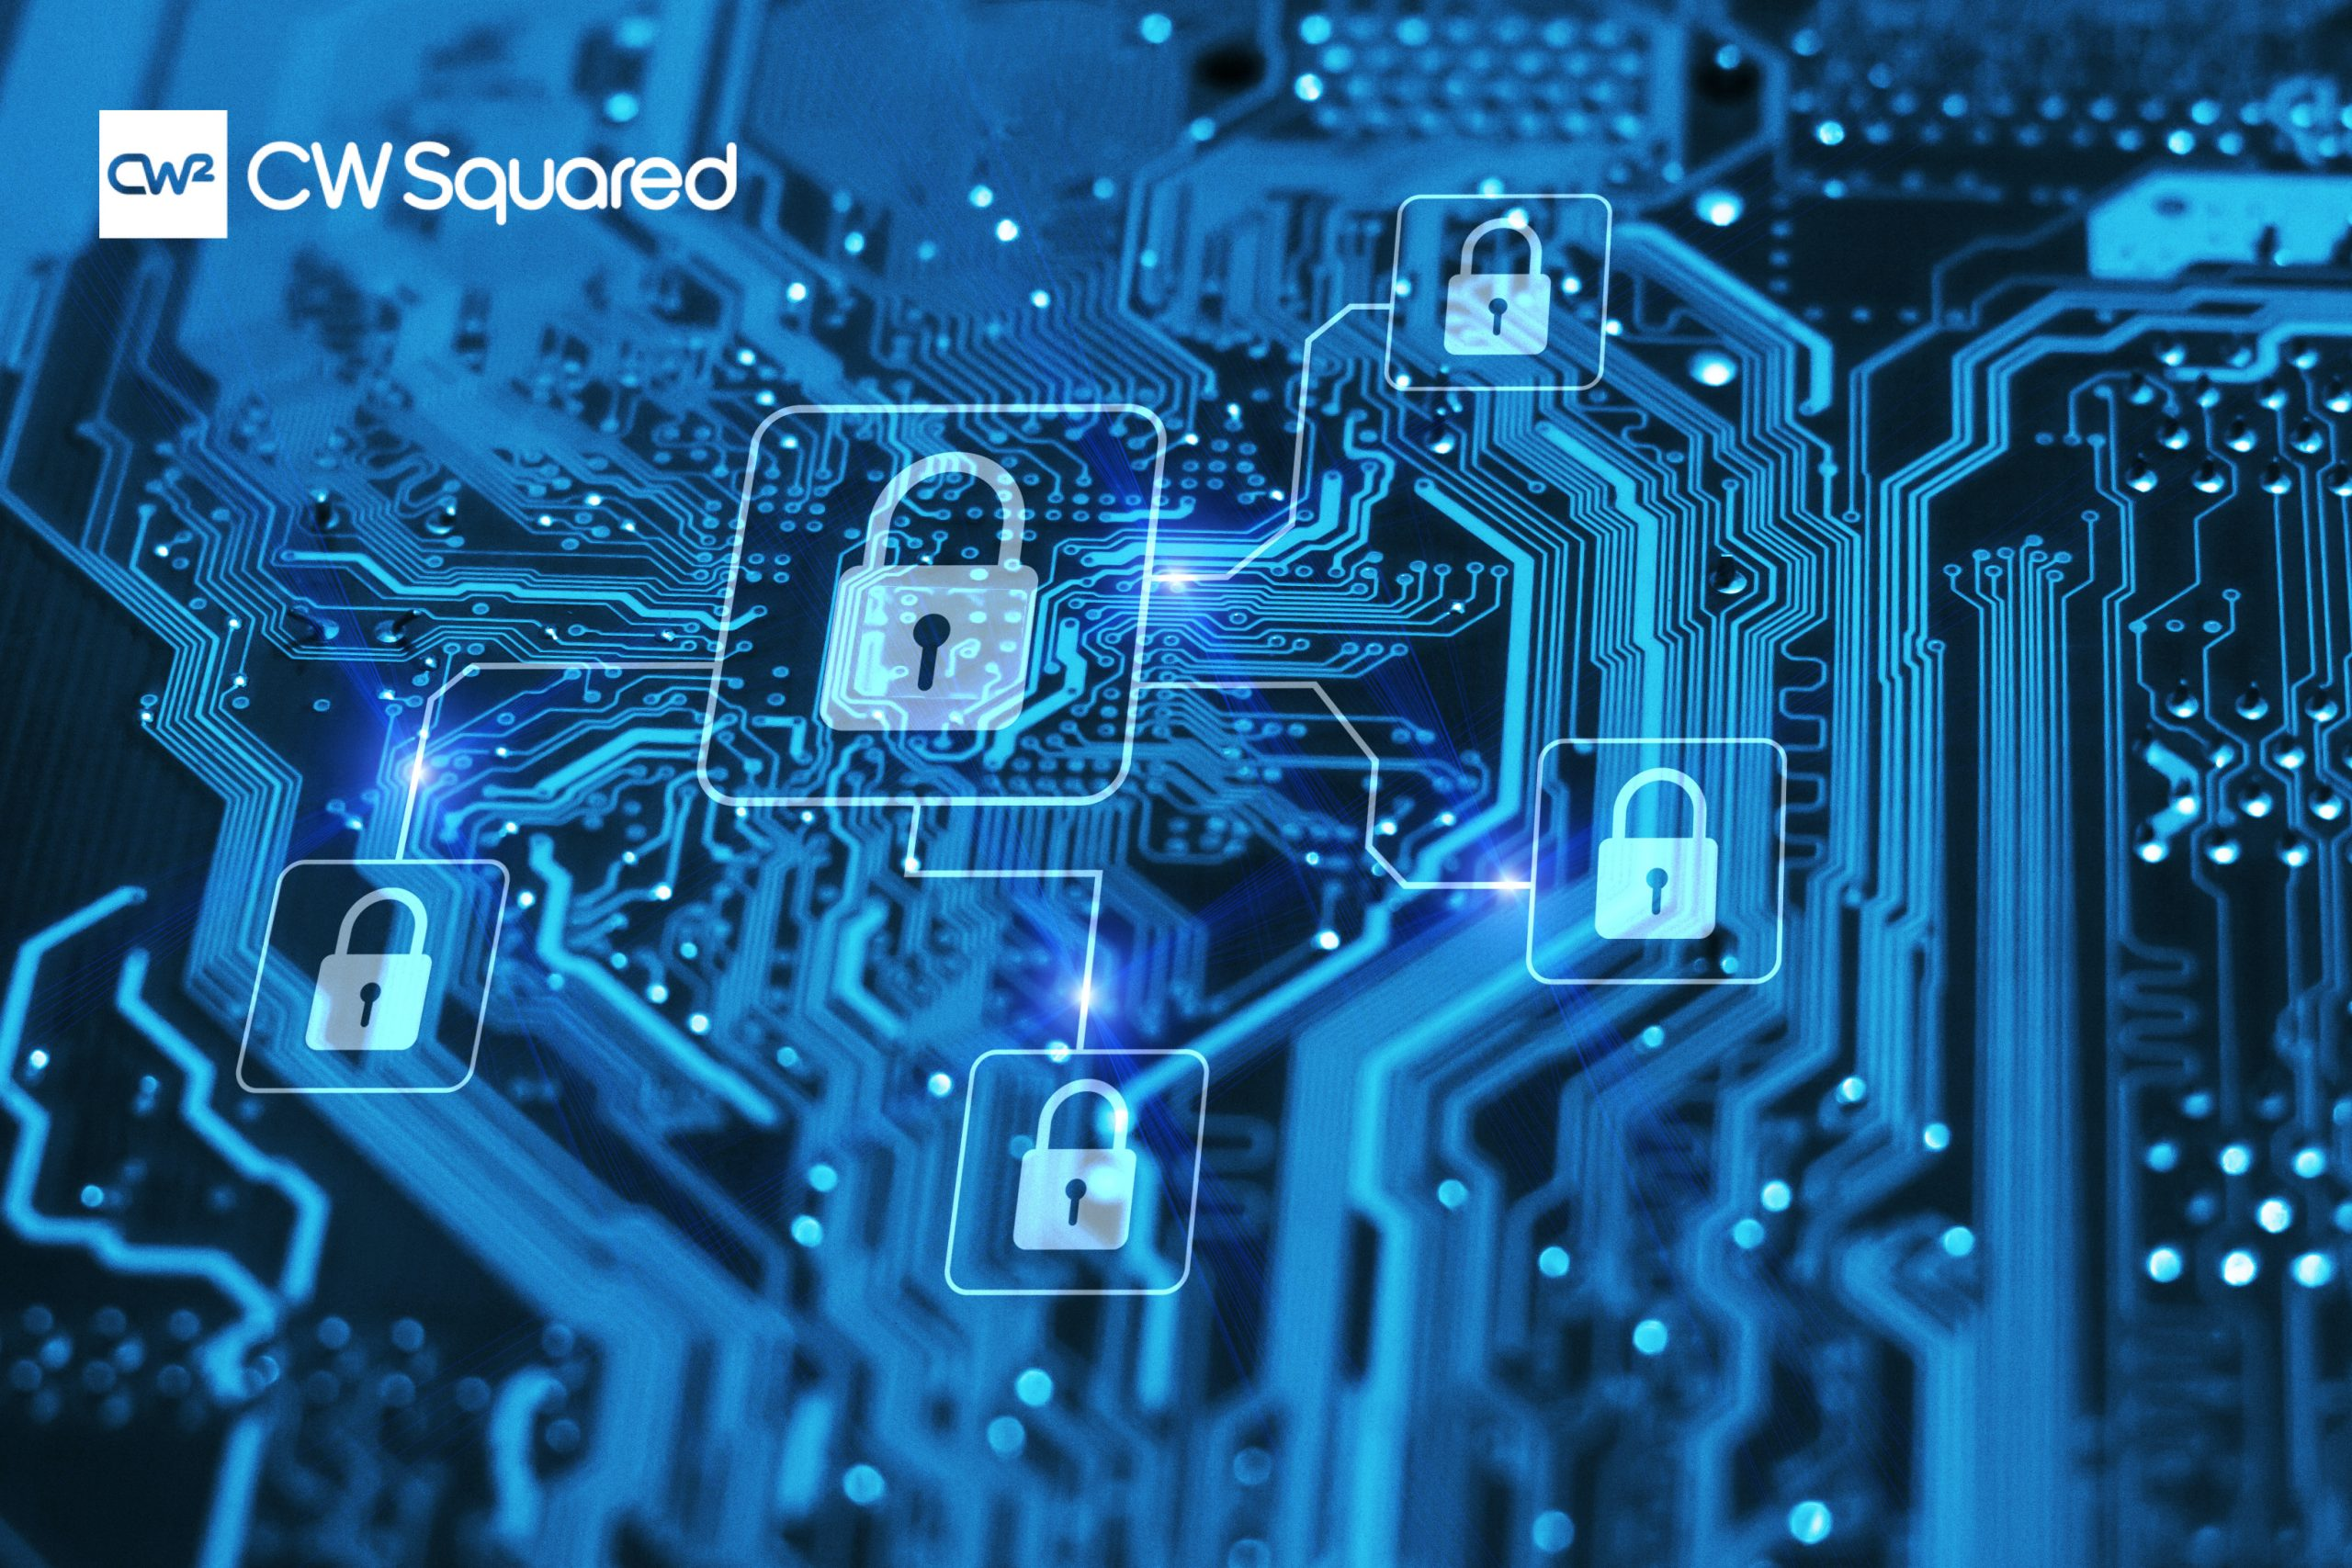 Using digital identities to secure communications